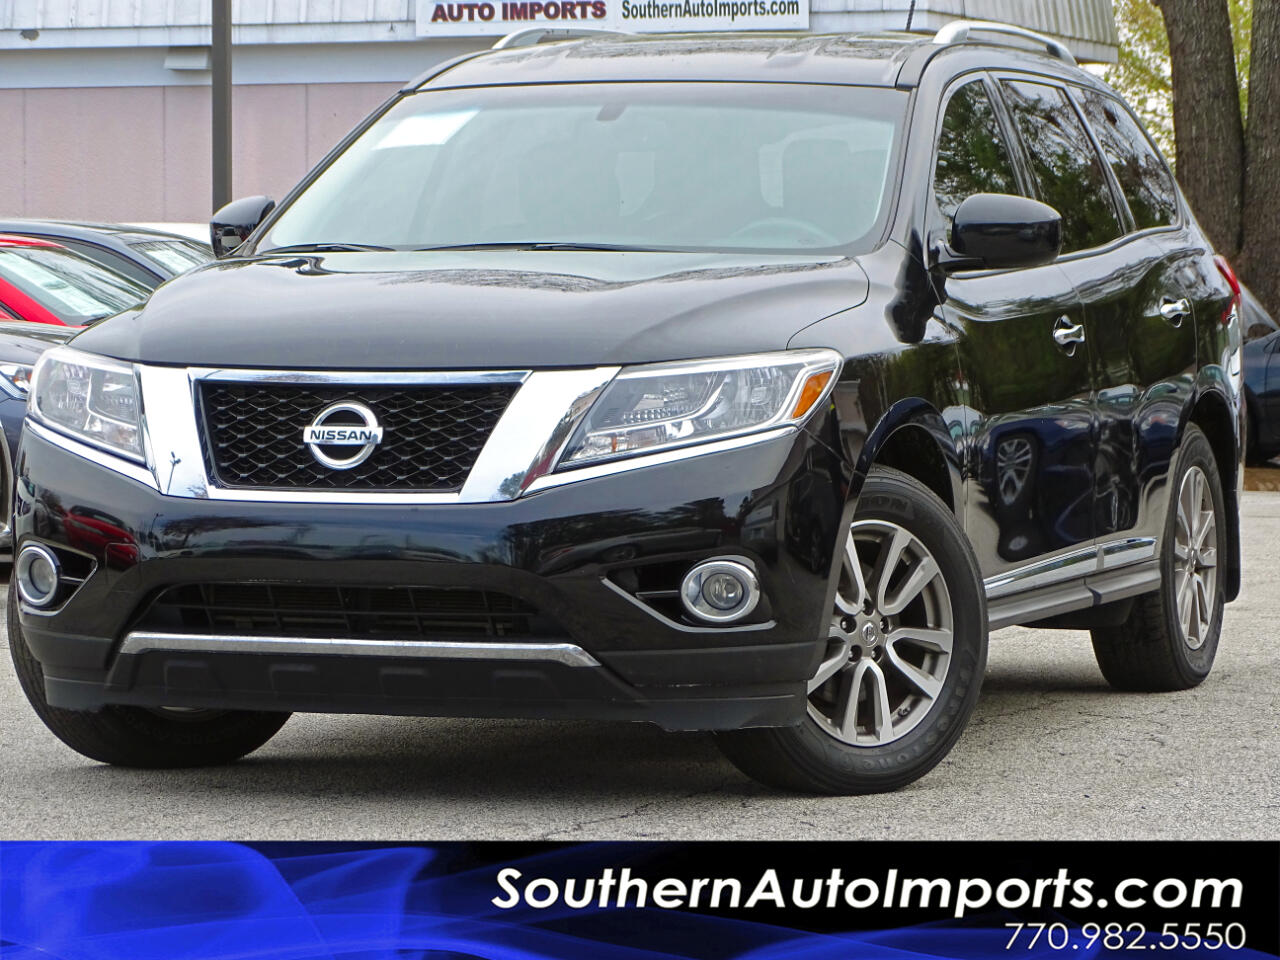 2015 Nissan Pathfinder SL w/3Rd Row Seats Heated Seats